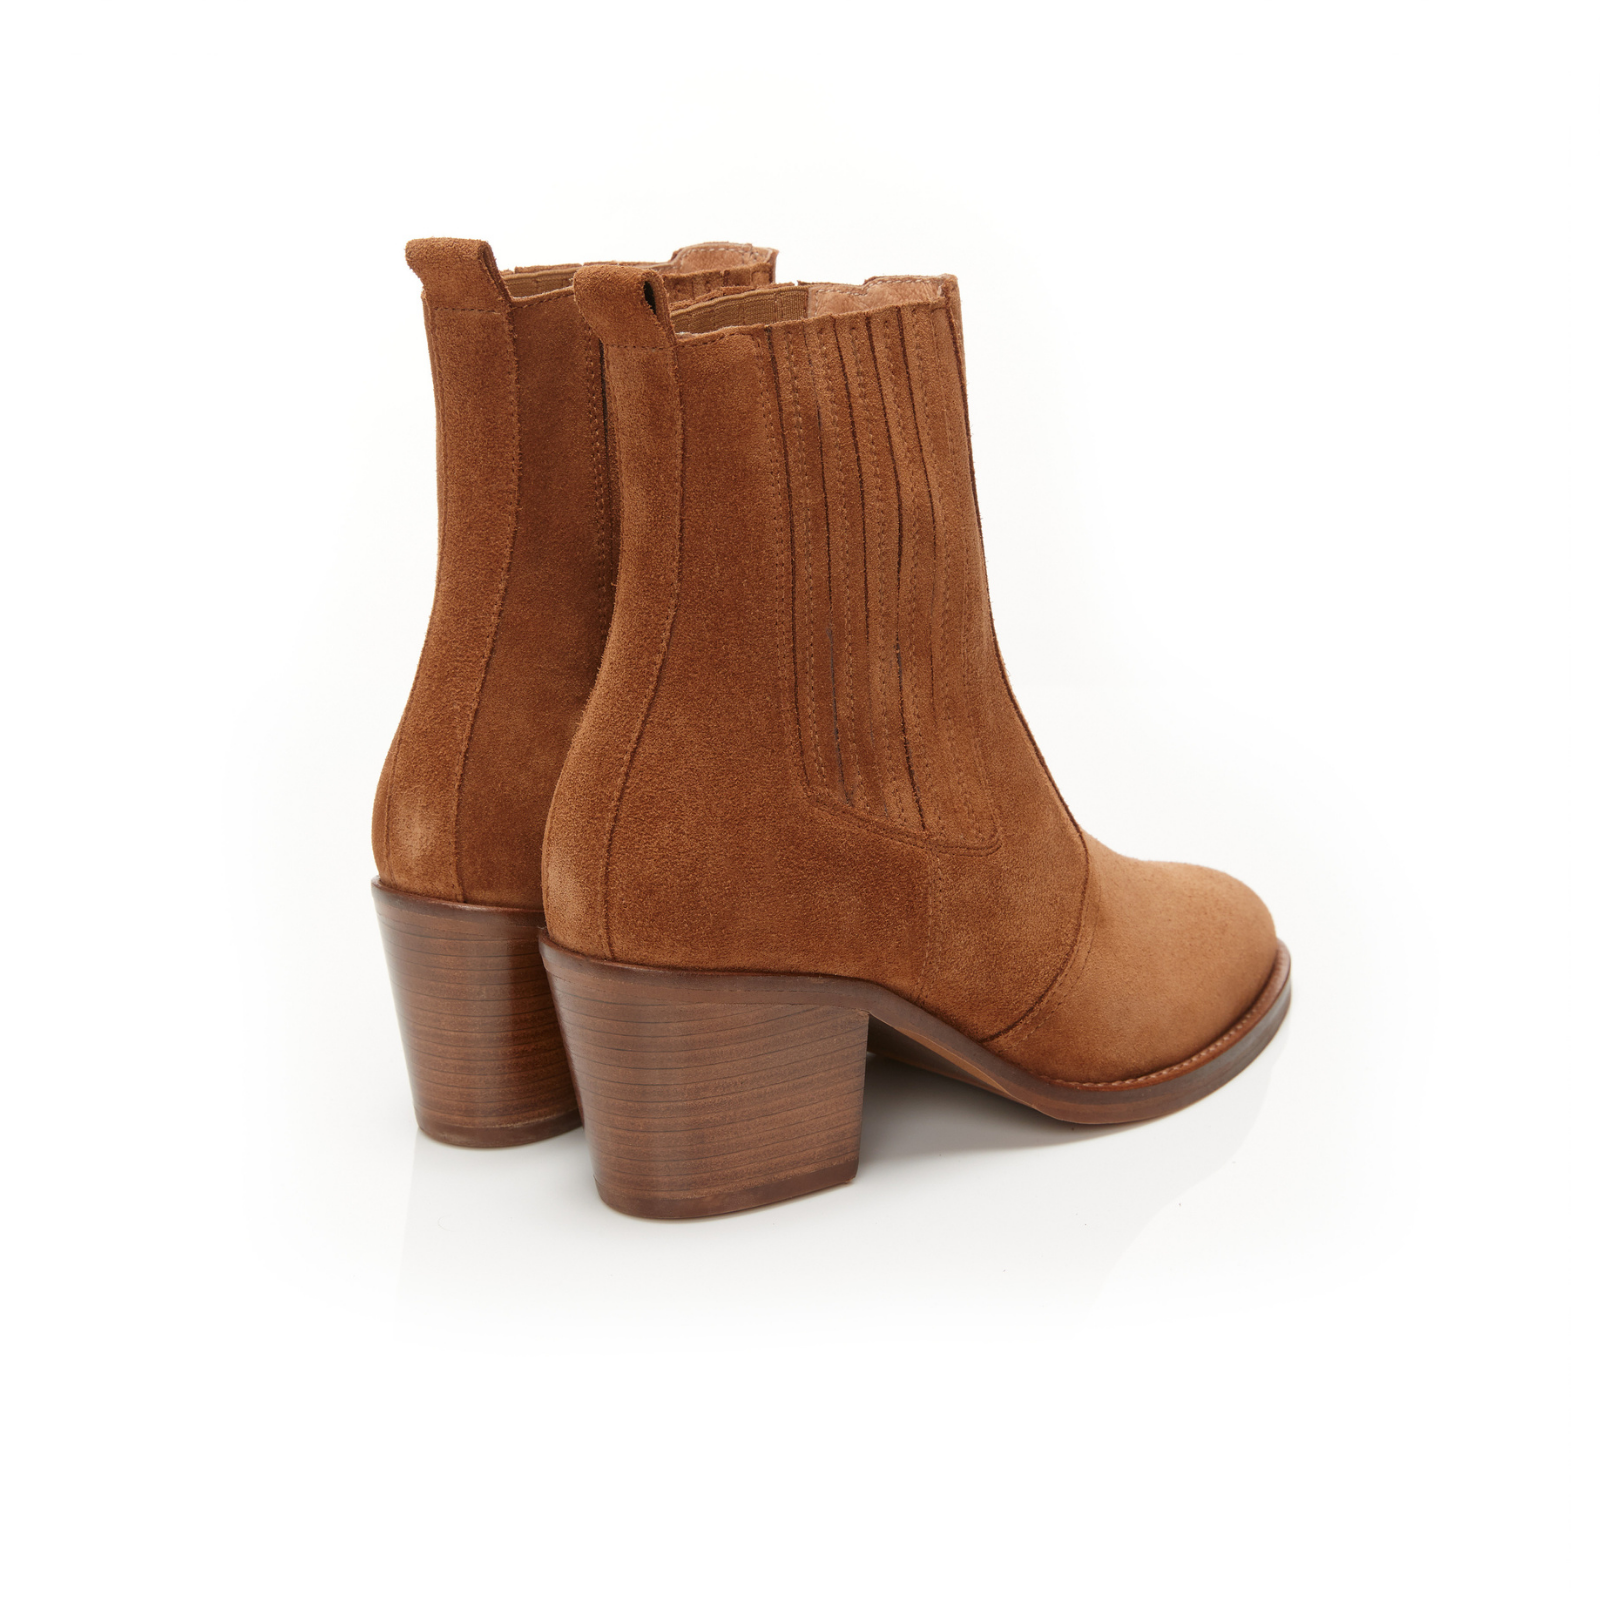 BARDOT: TAN SUEDE ANKLE BOOTS